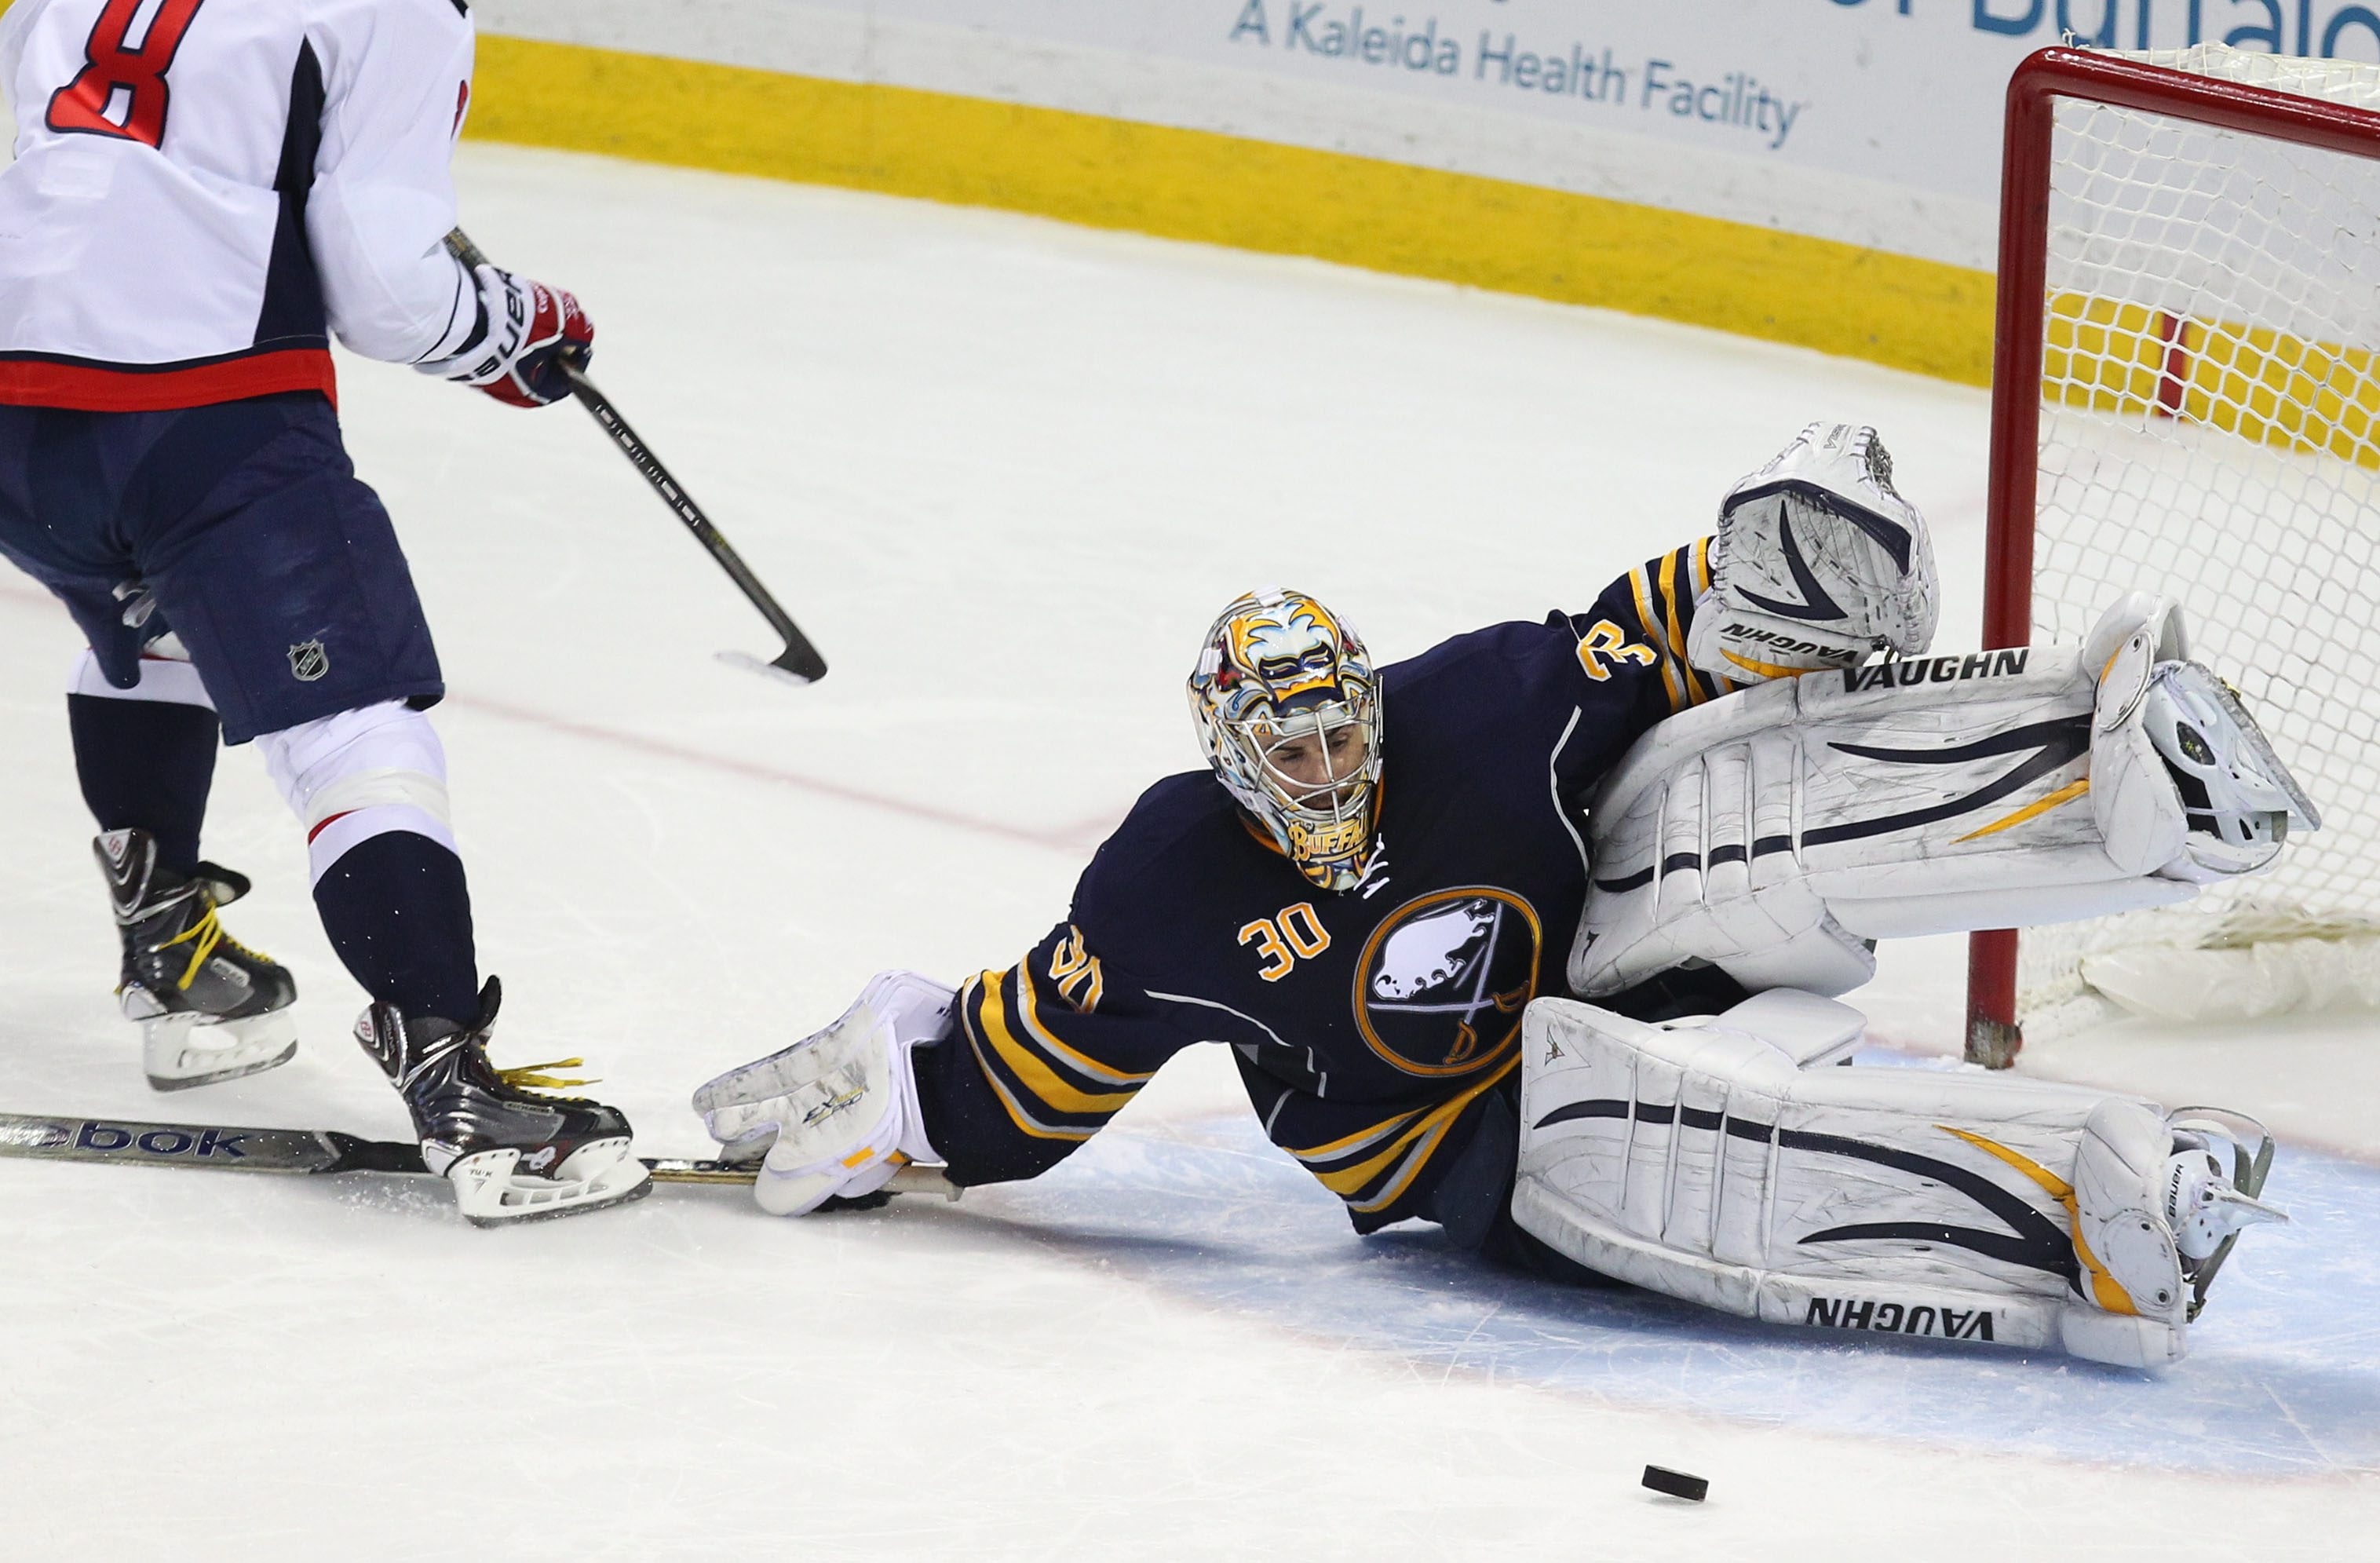 Ryan Miller stops the Capital's Alex Ovechkin in the shootout period at the First Niagara Center in Buffalo Sunday, December 29, 2013. He set a career high with 49 saves, plus another six in shootout in 2-1 victory.  (Mark Mulville/Buffalo News)